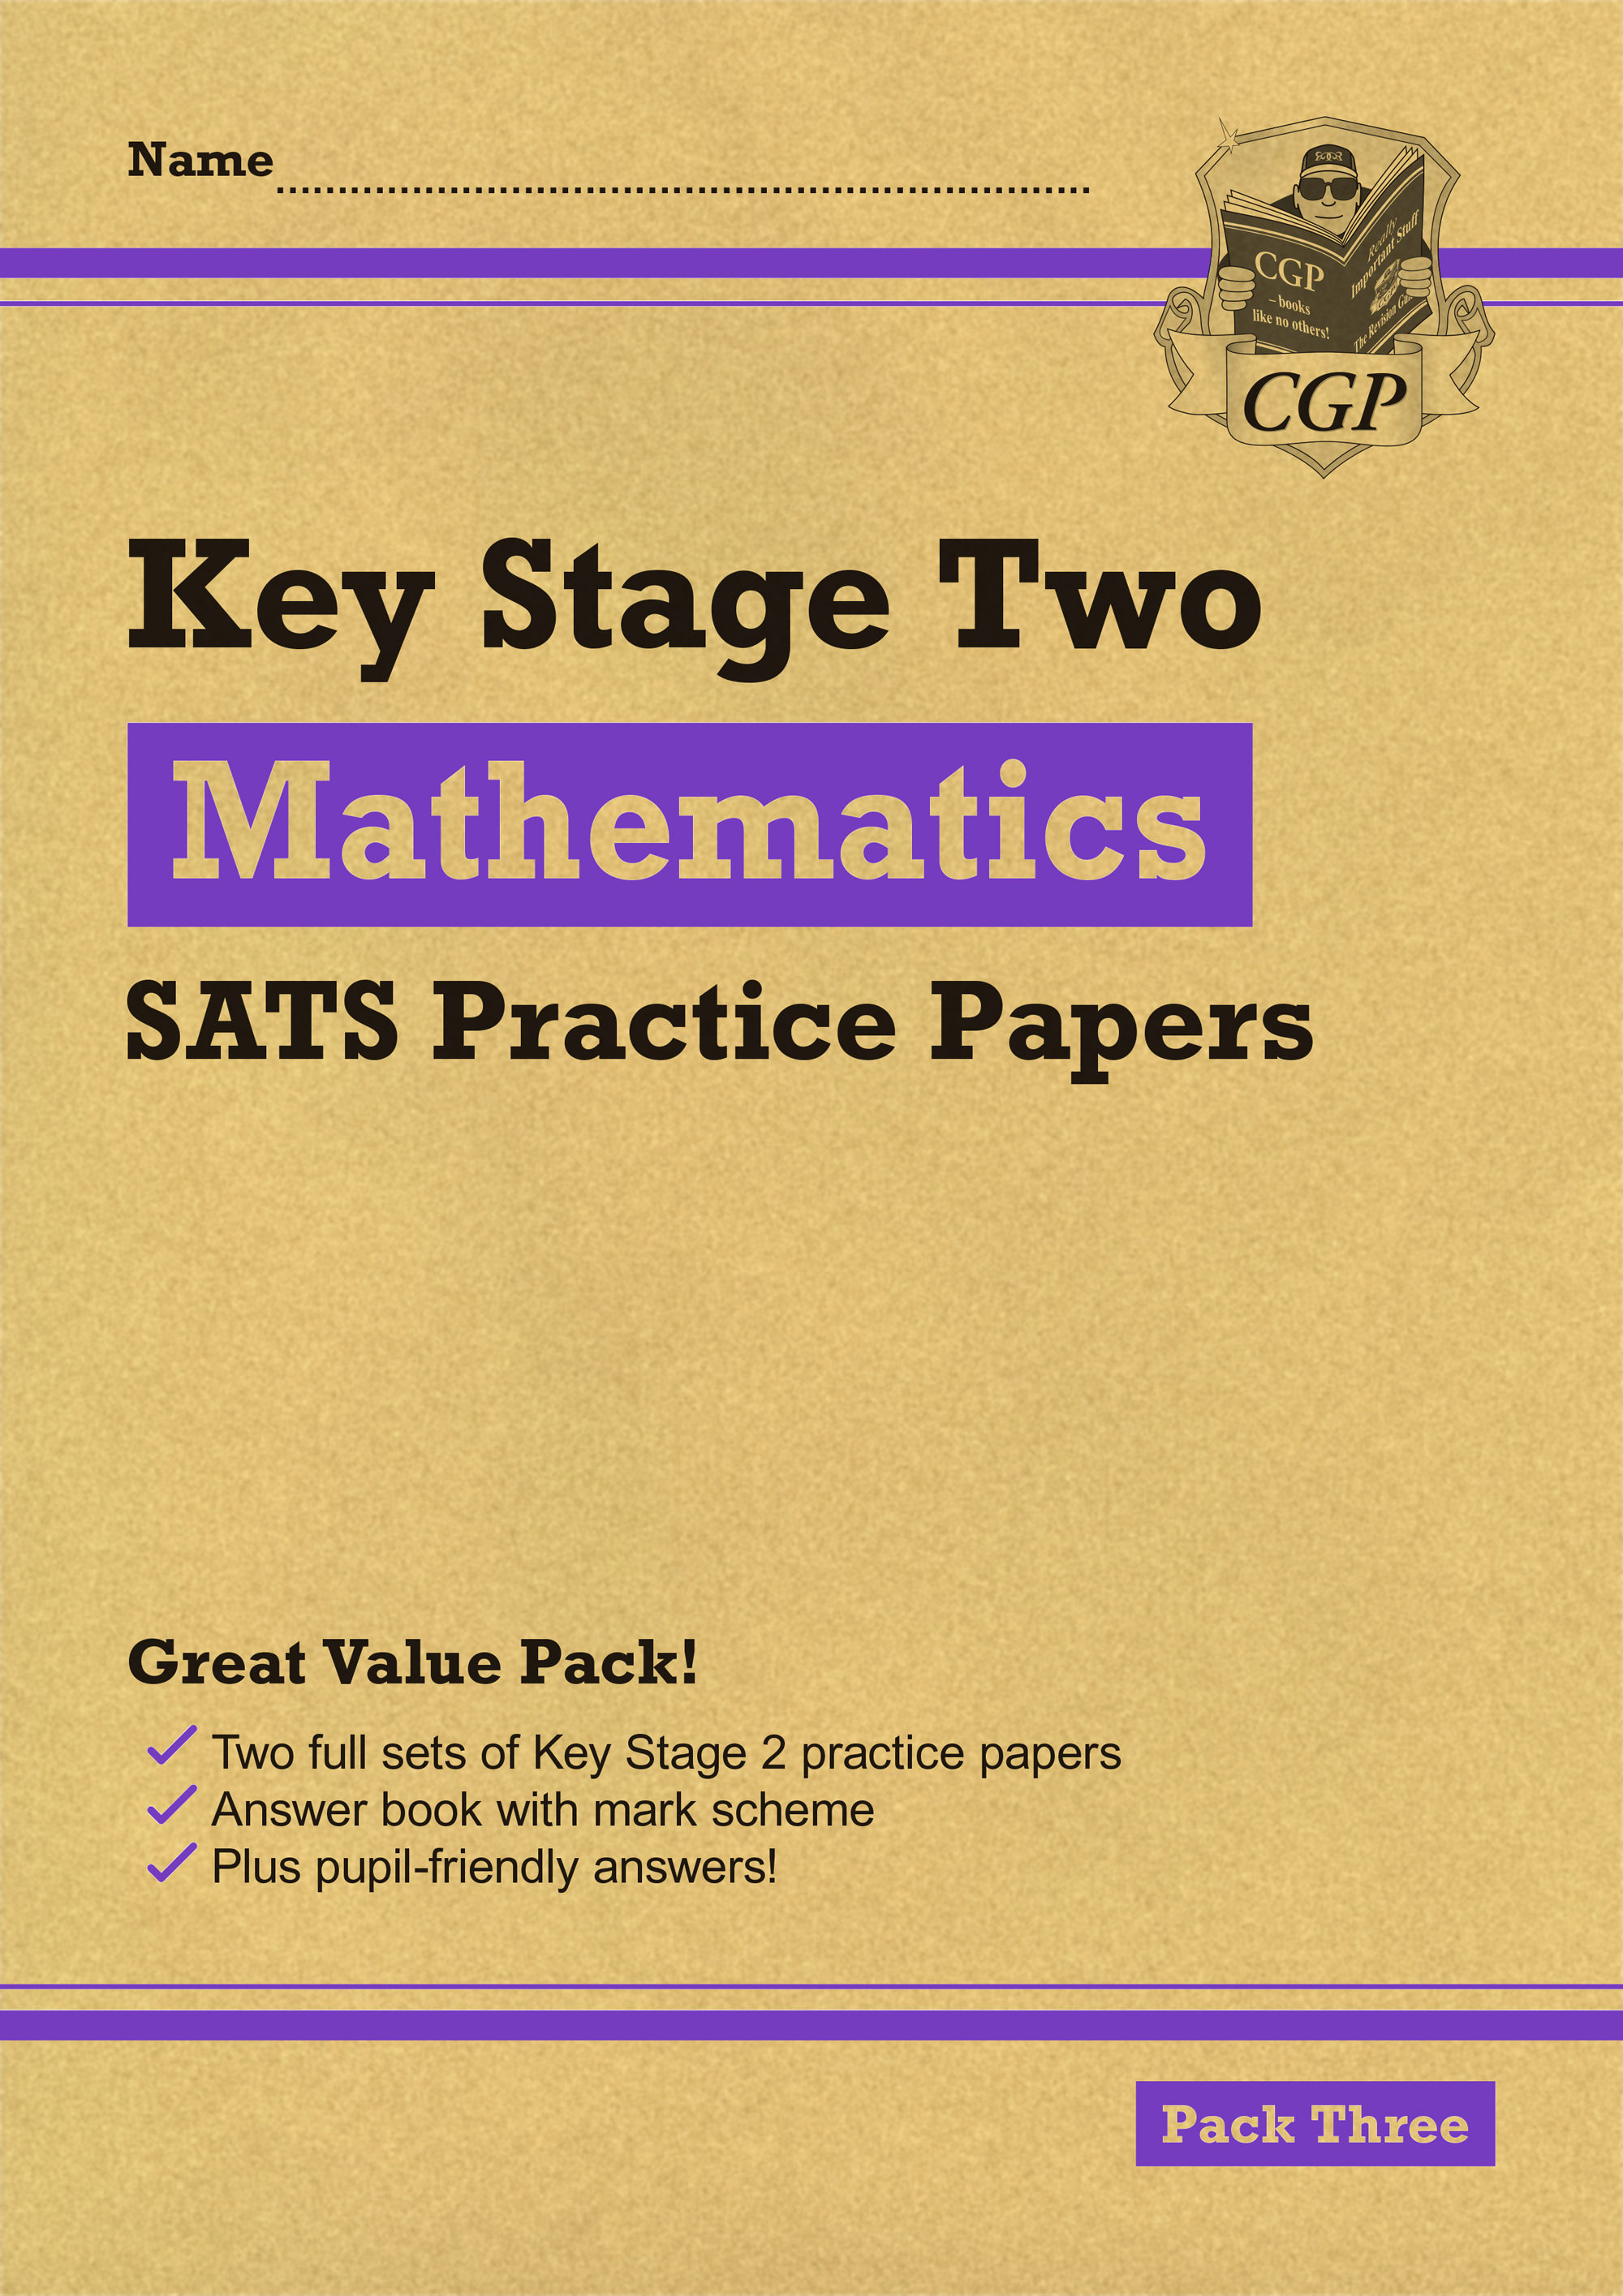 MHPP27 - New KS2 Maths SATS Practice Papers: Pack 3 (for the 2019 tests)